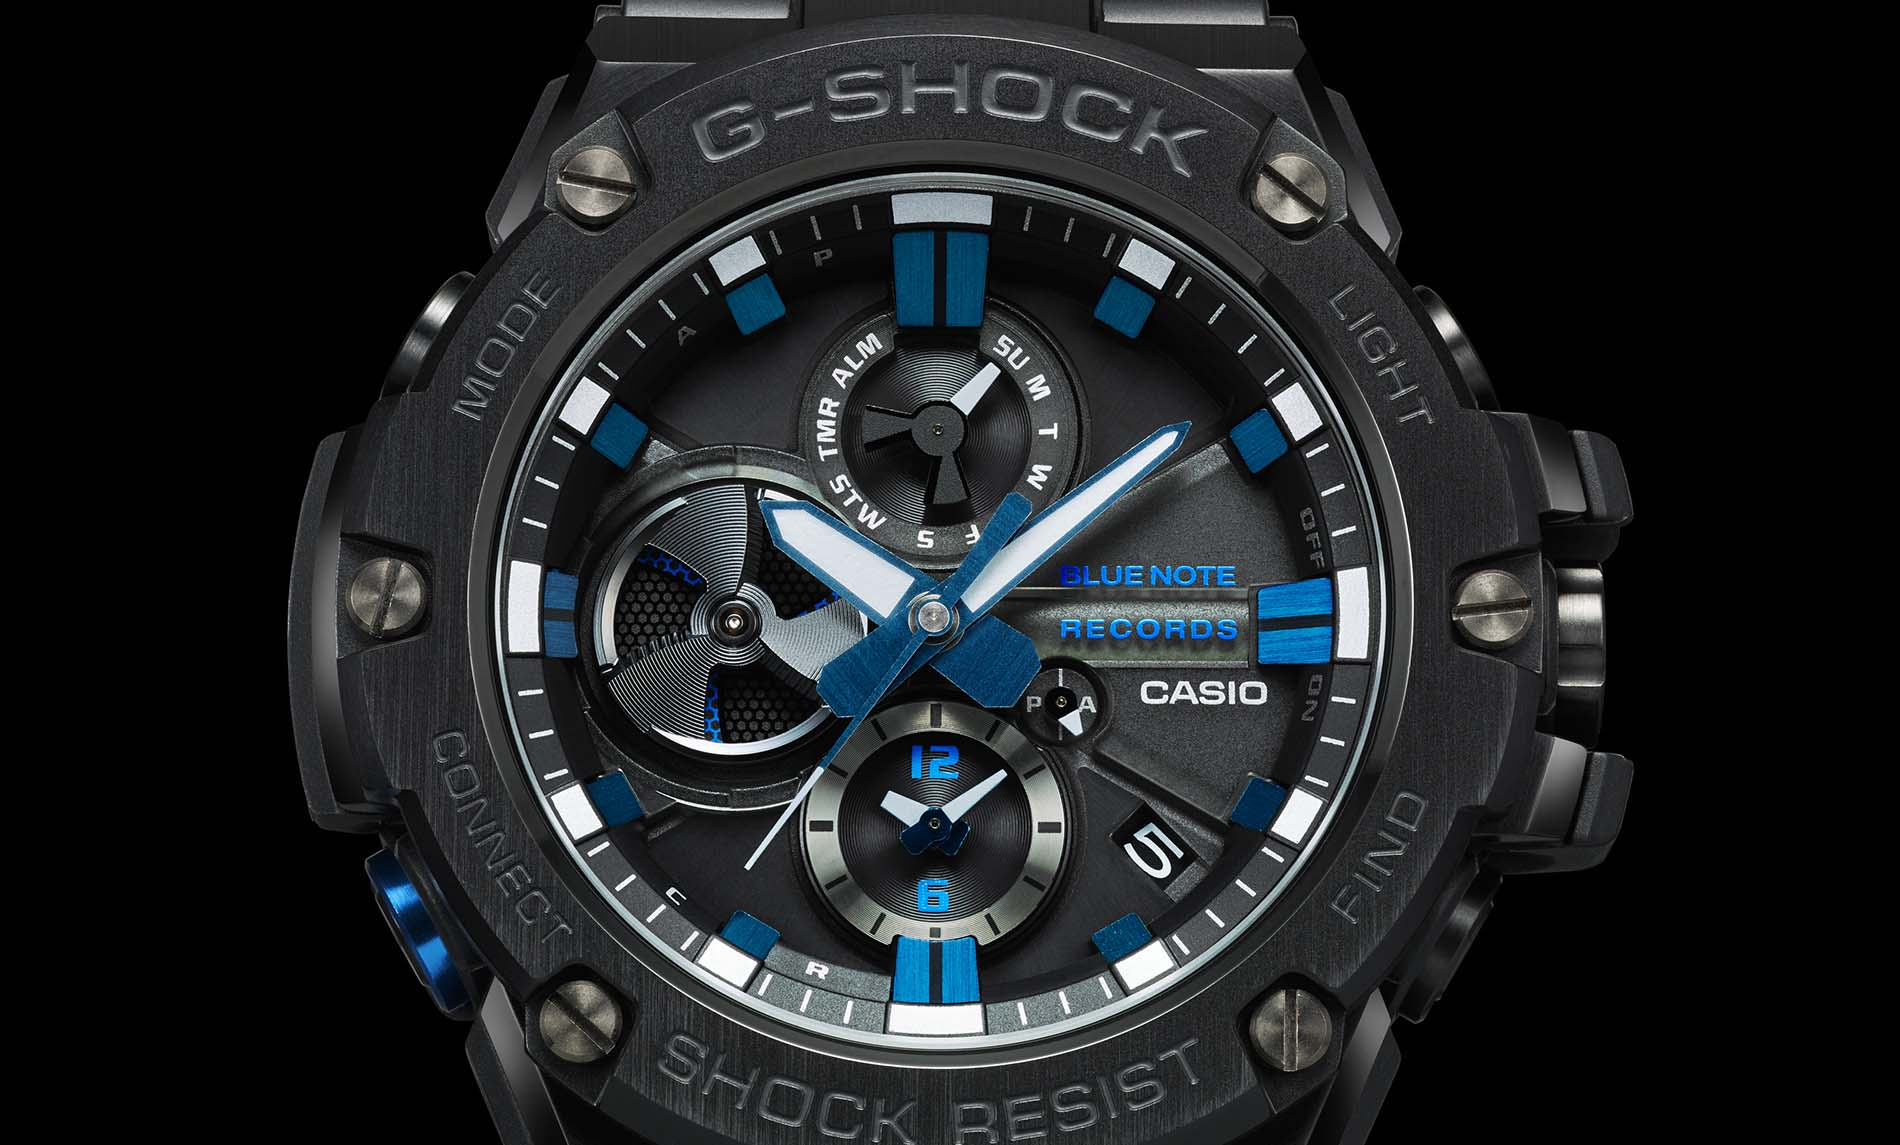 G Shock Watches By Casio Tough Waterproof Digital Analog Watches